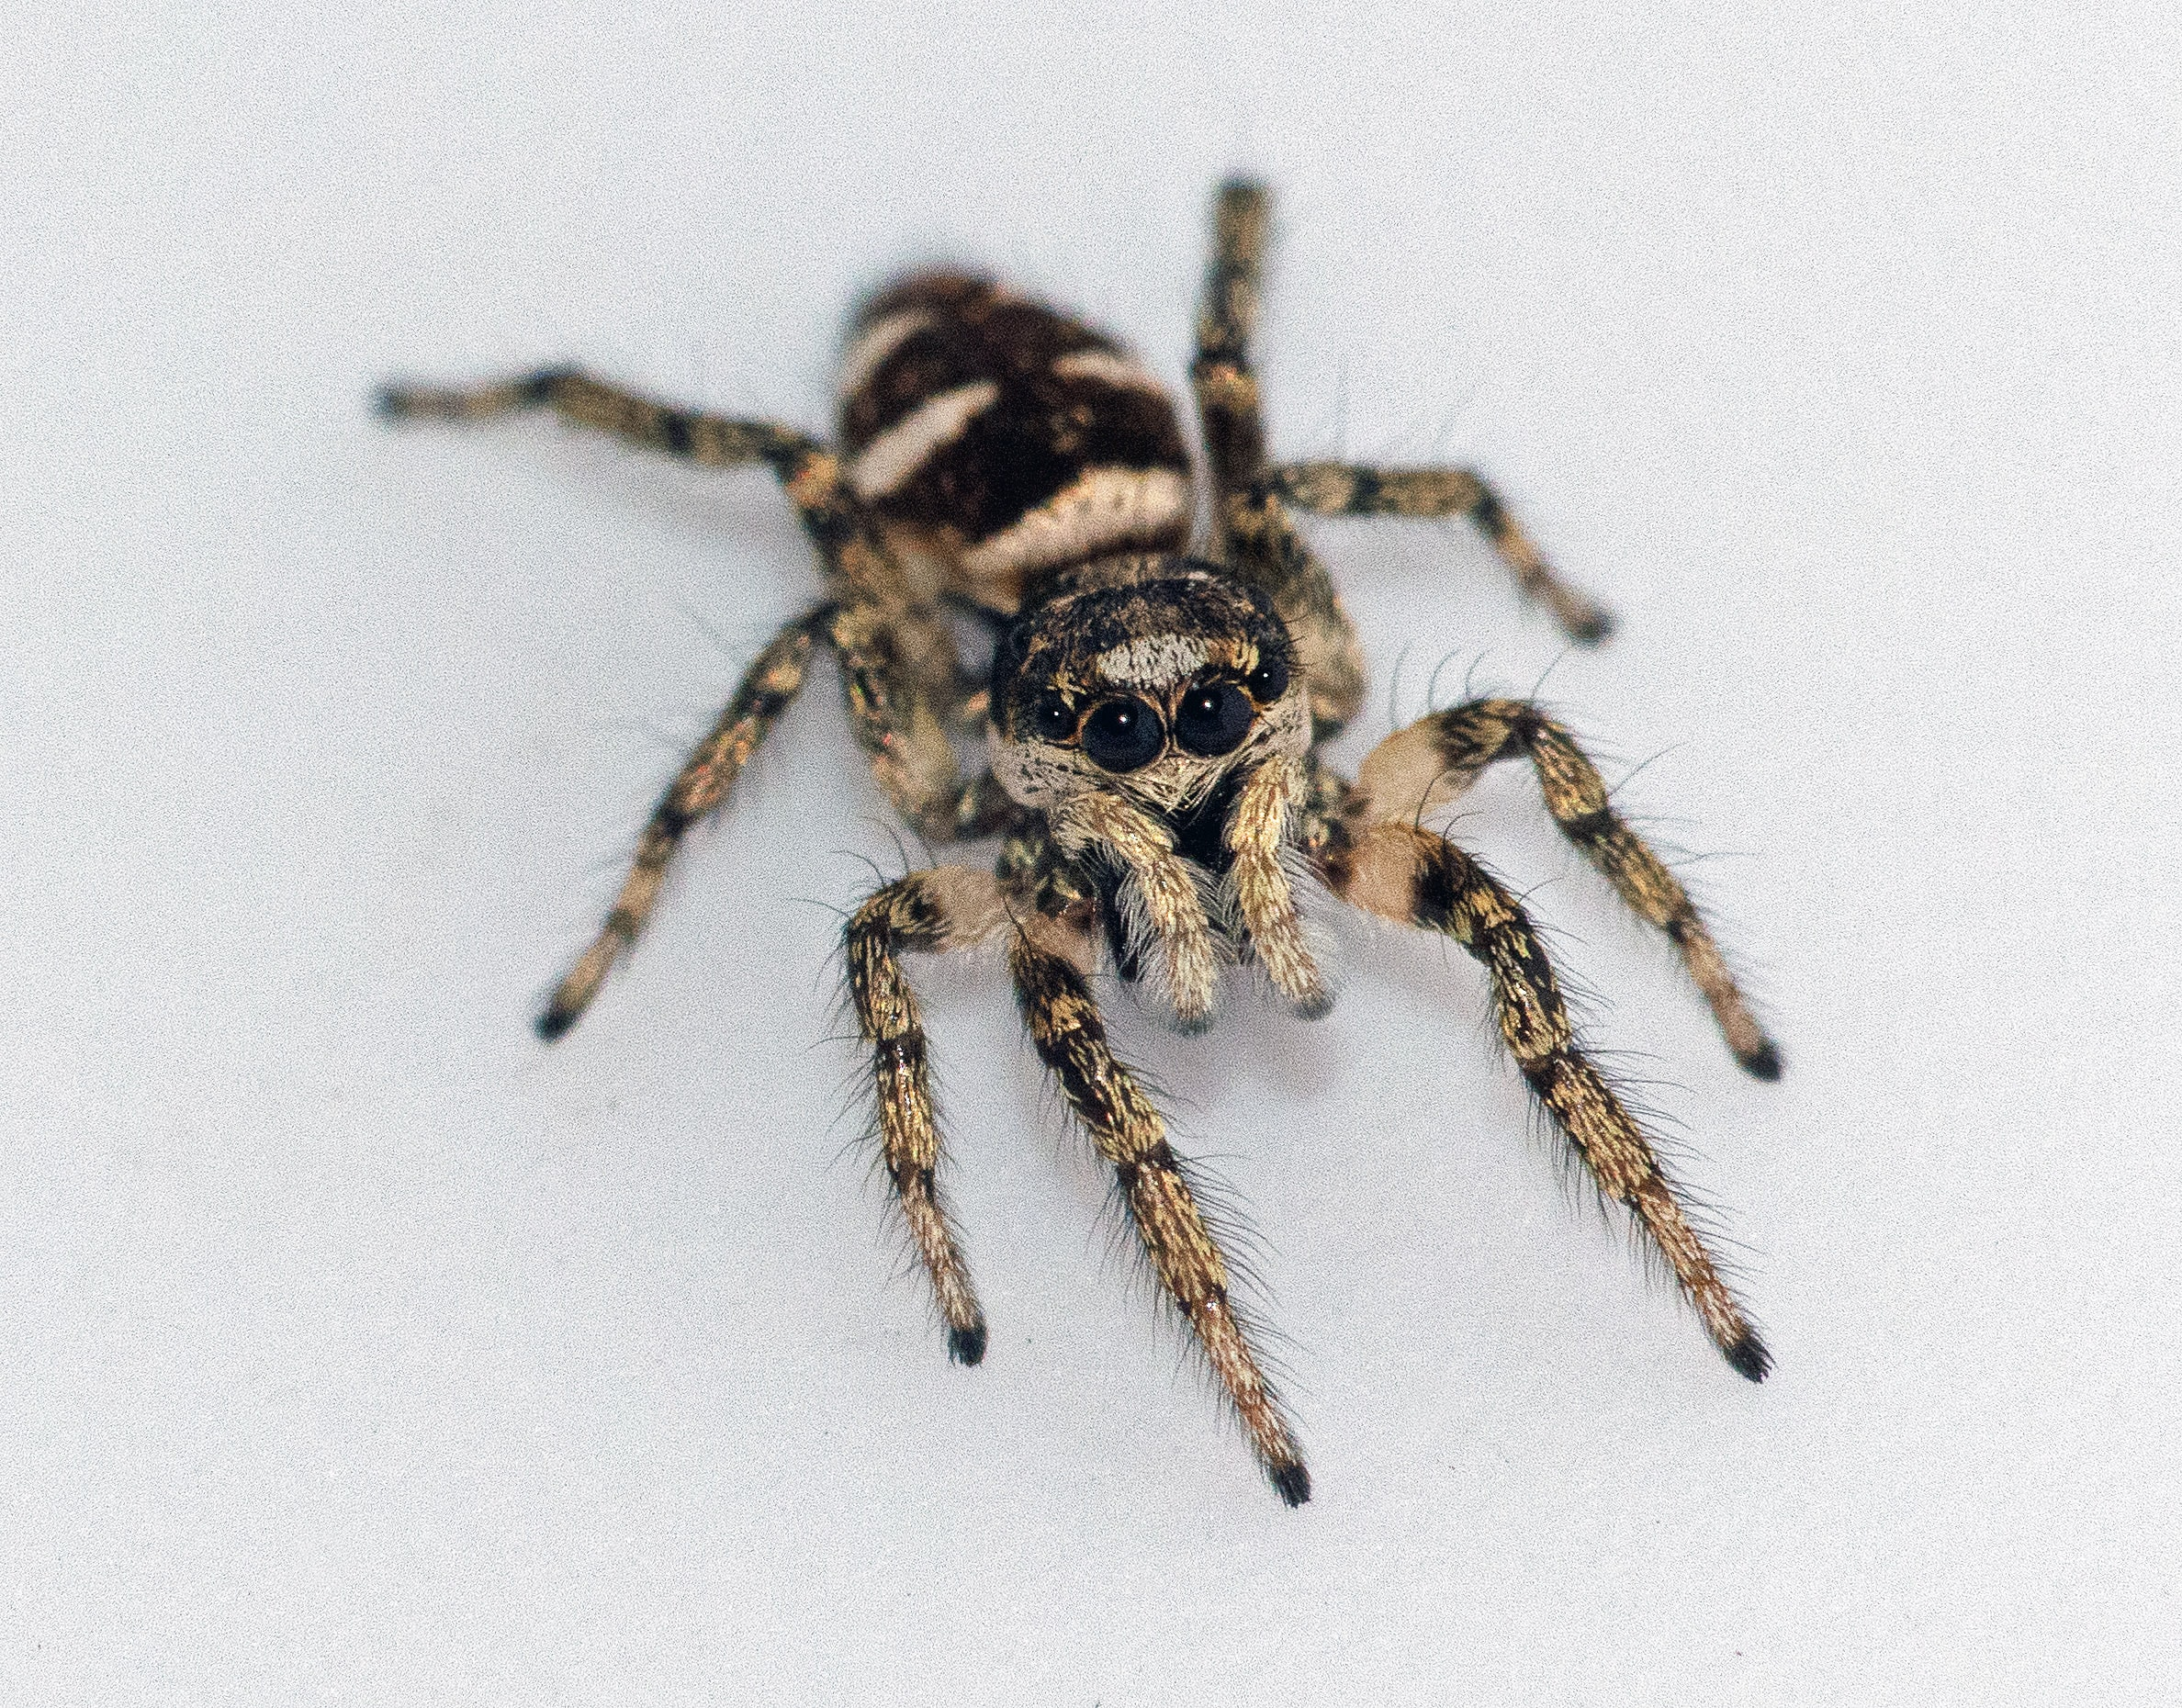 Salticus scenicus (Zebra Jumper) - Spider Identification & Pictures